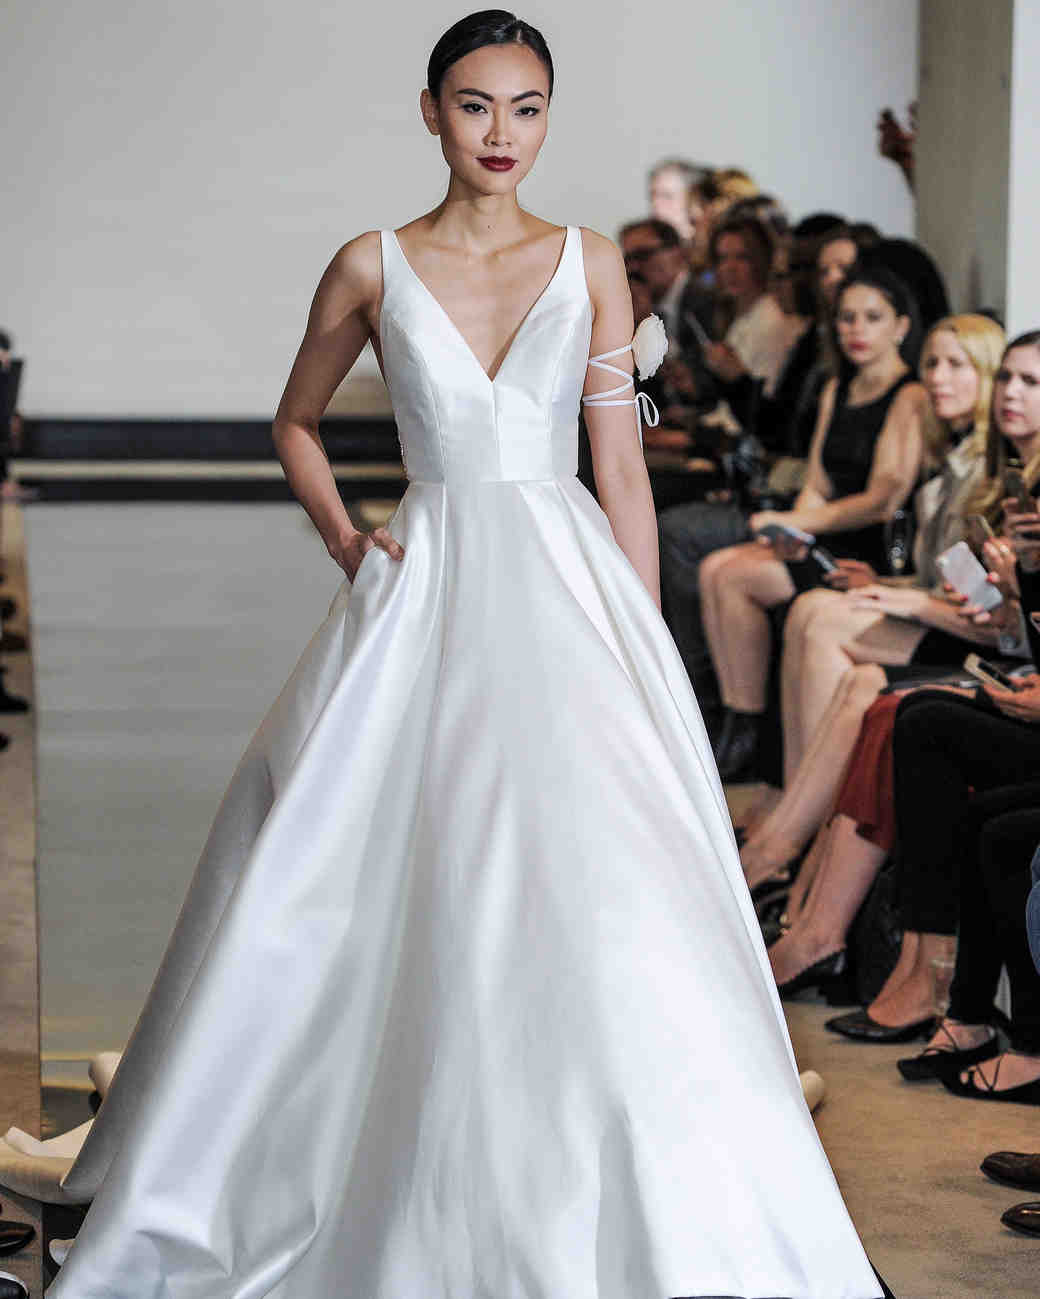 Pictures Of Gowns For Wedding: Simple Wedding Dresses That Are Just Plain Chic